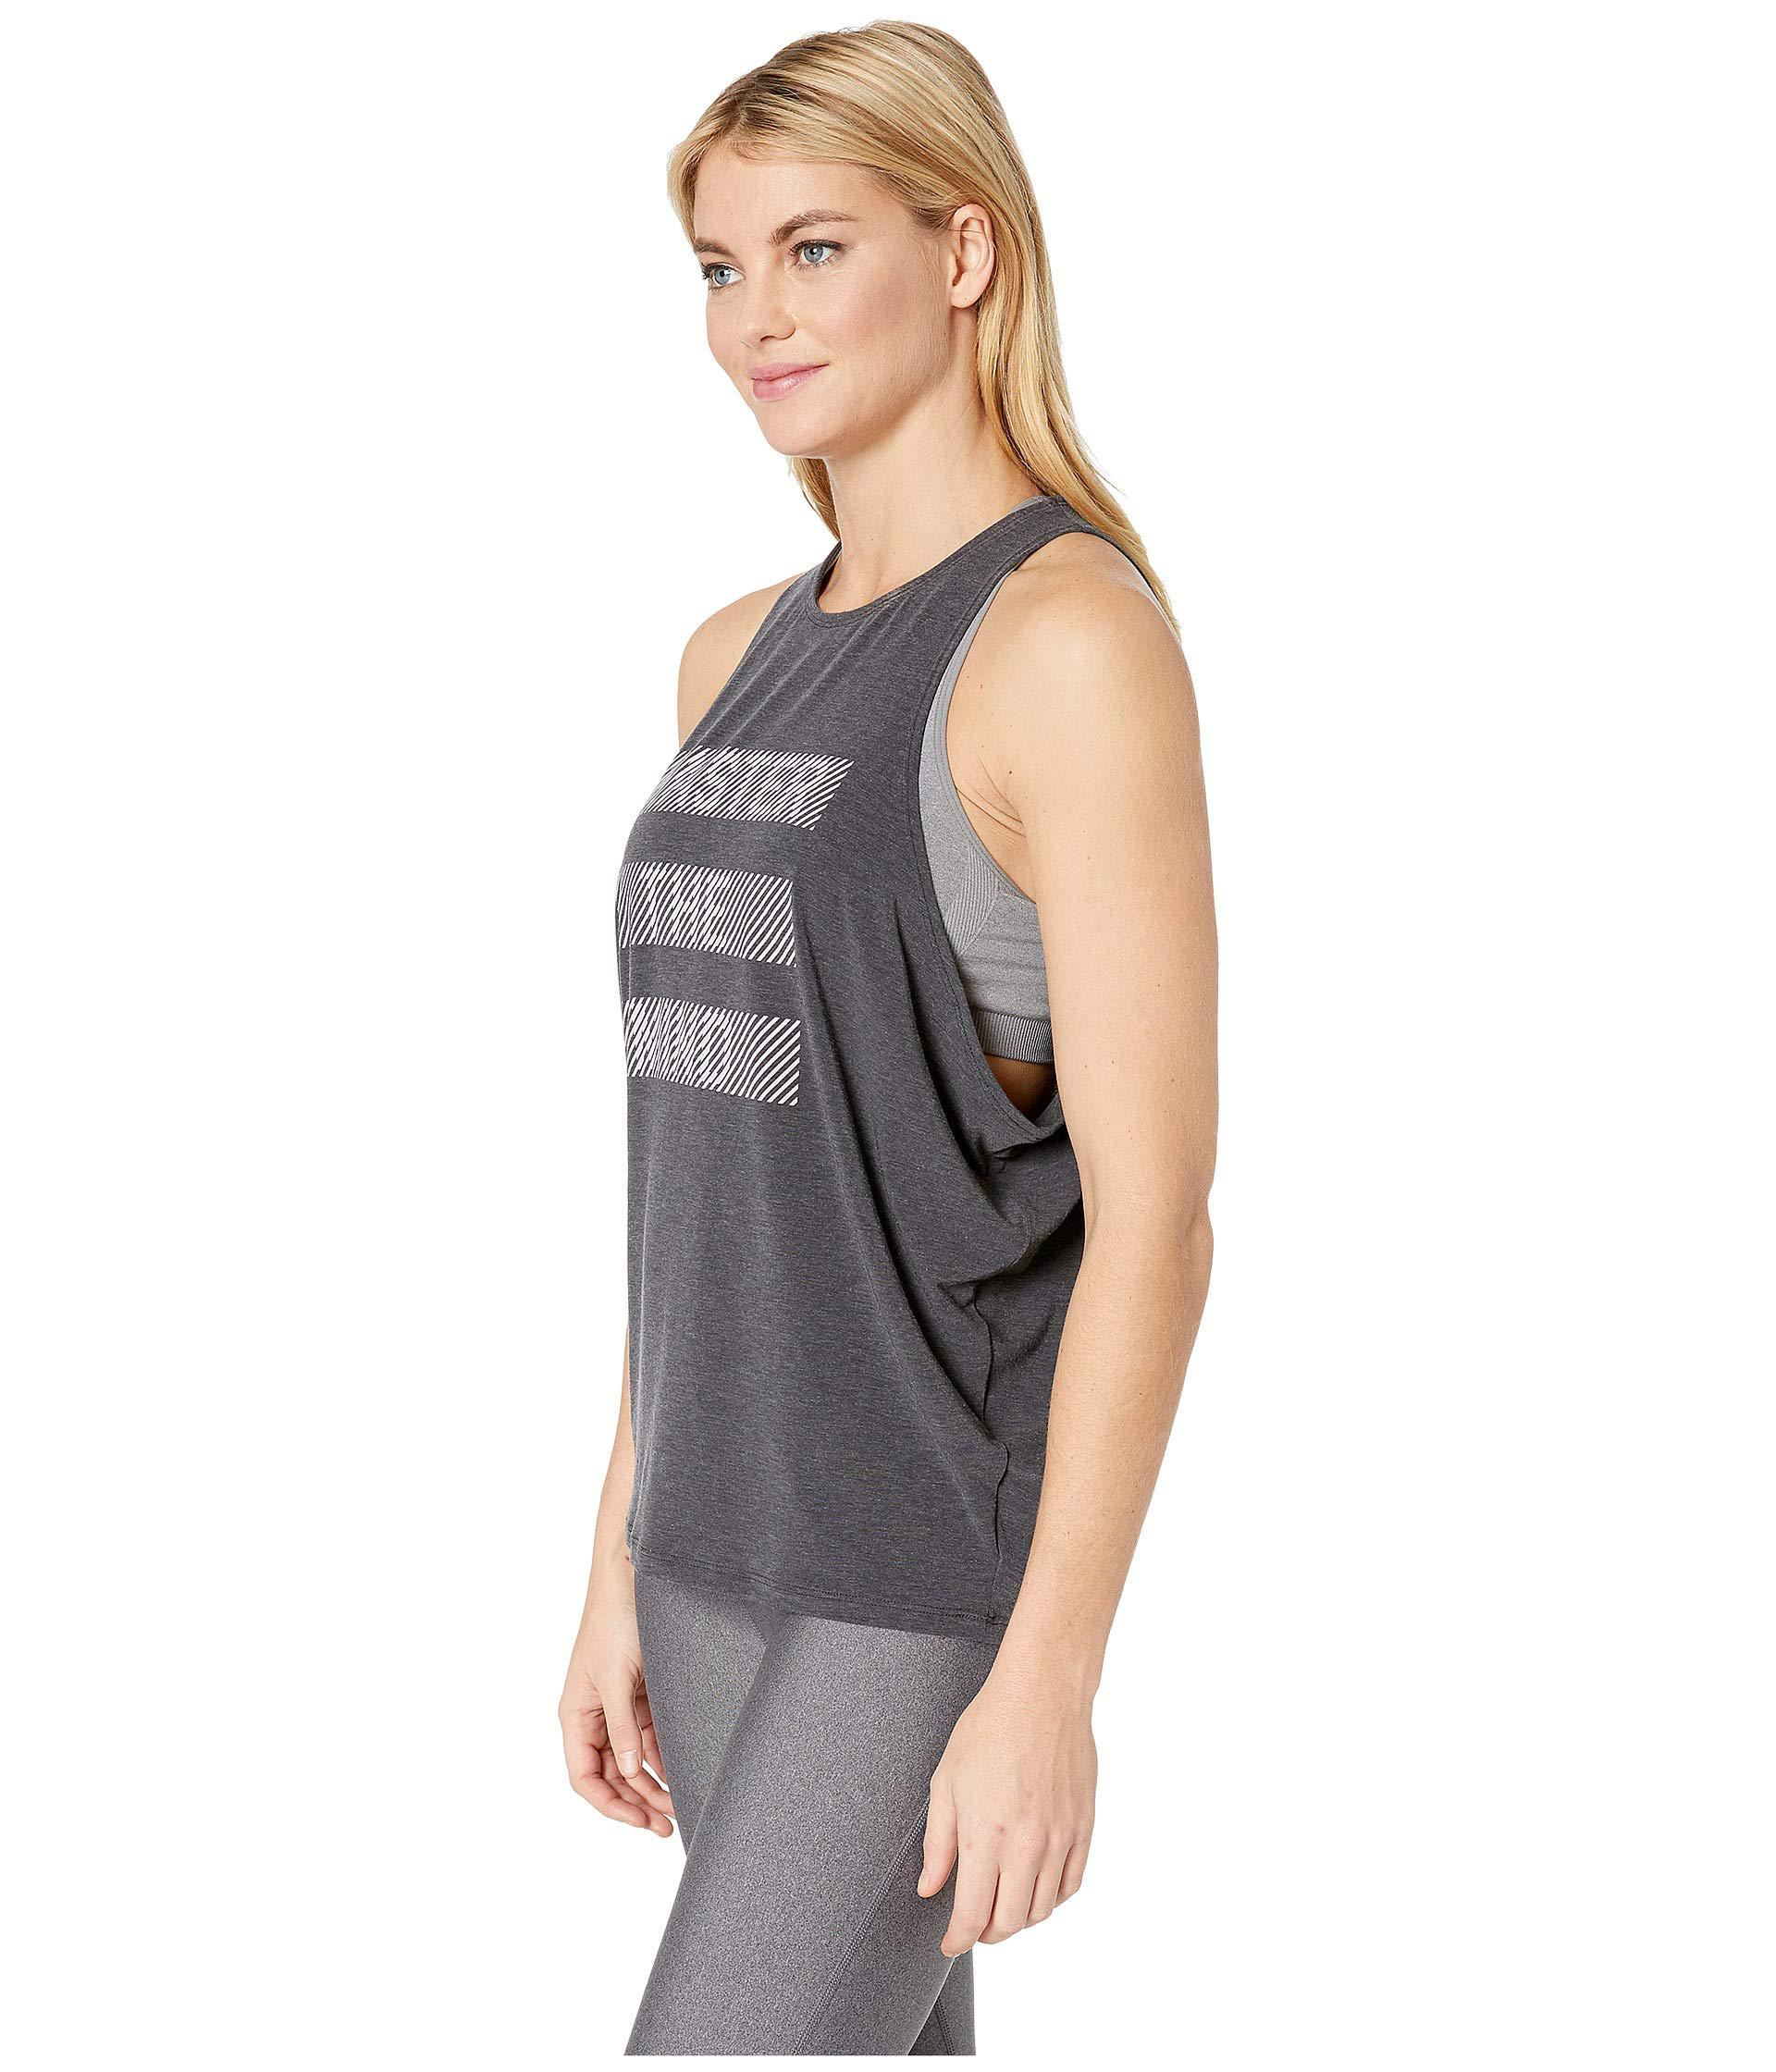 f970df117a9fb Lyst - New Balance Graphic Wedge Layering Tank Top in Black